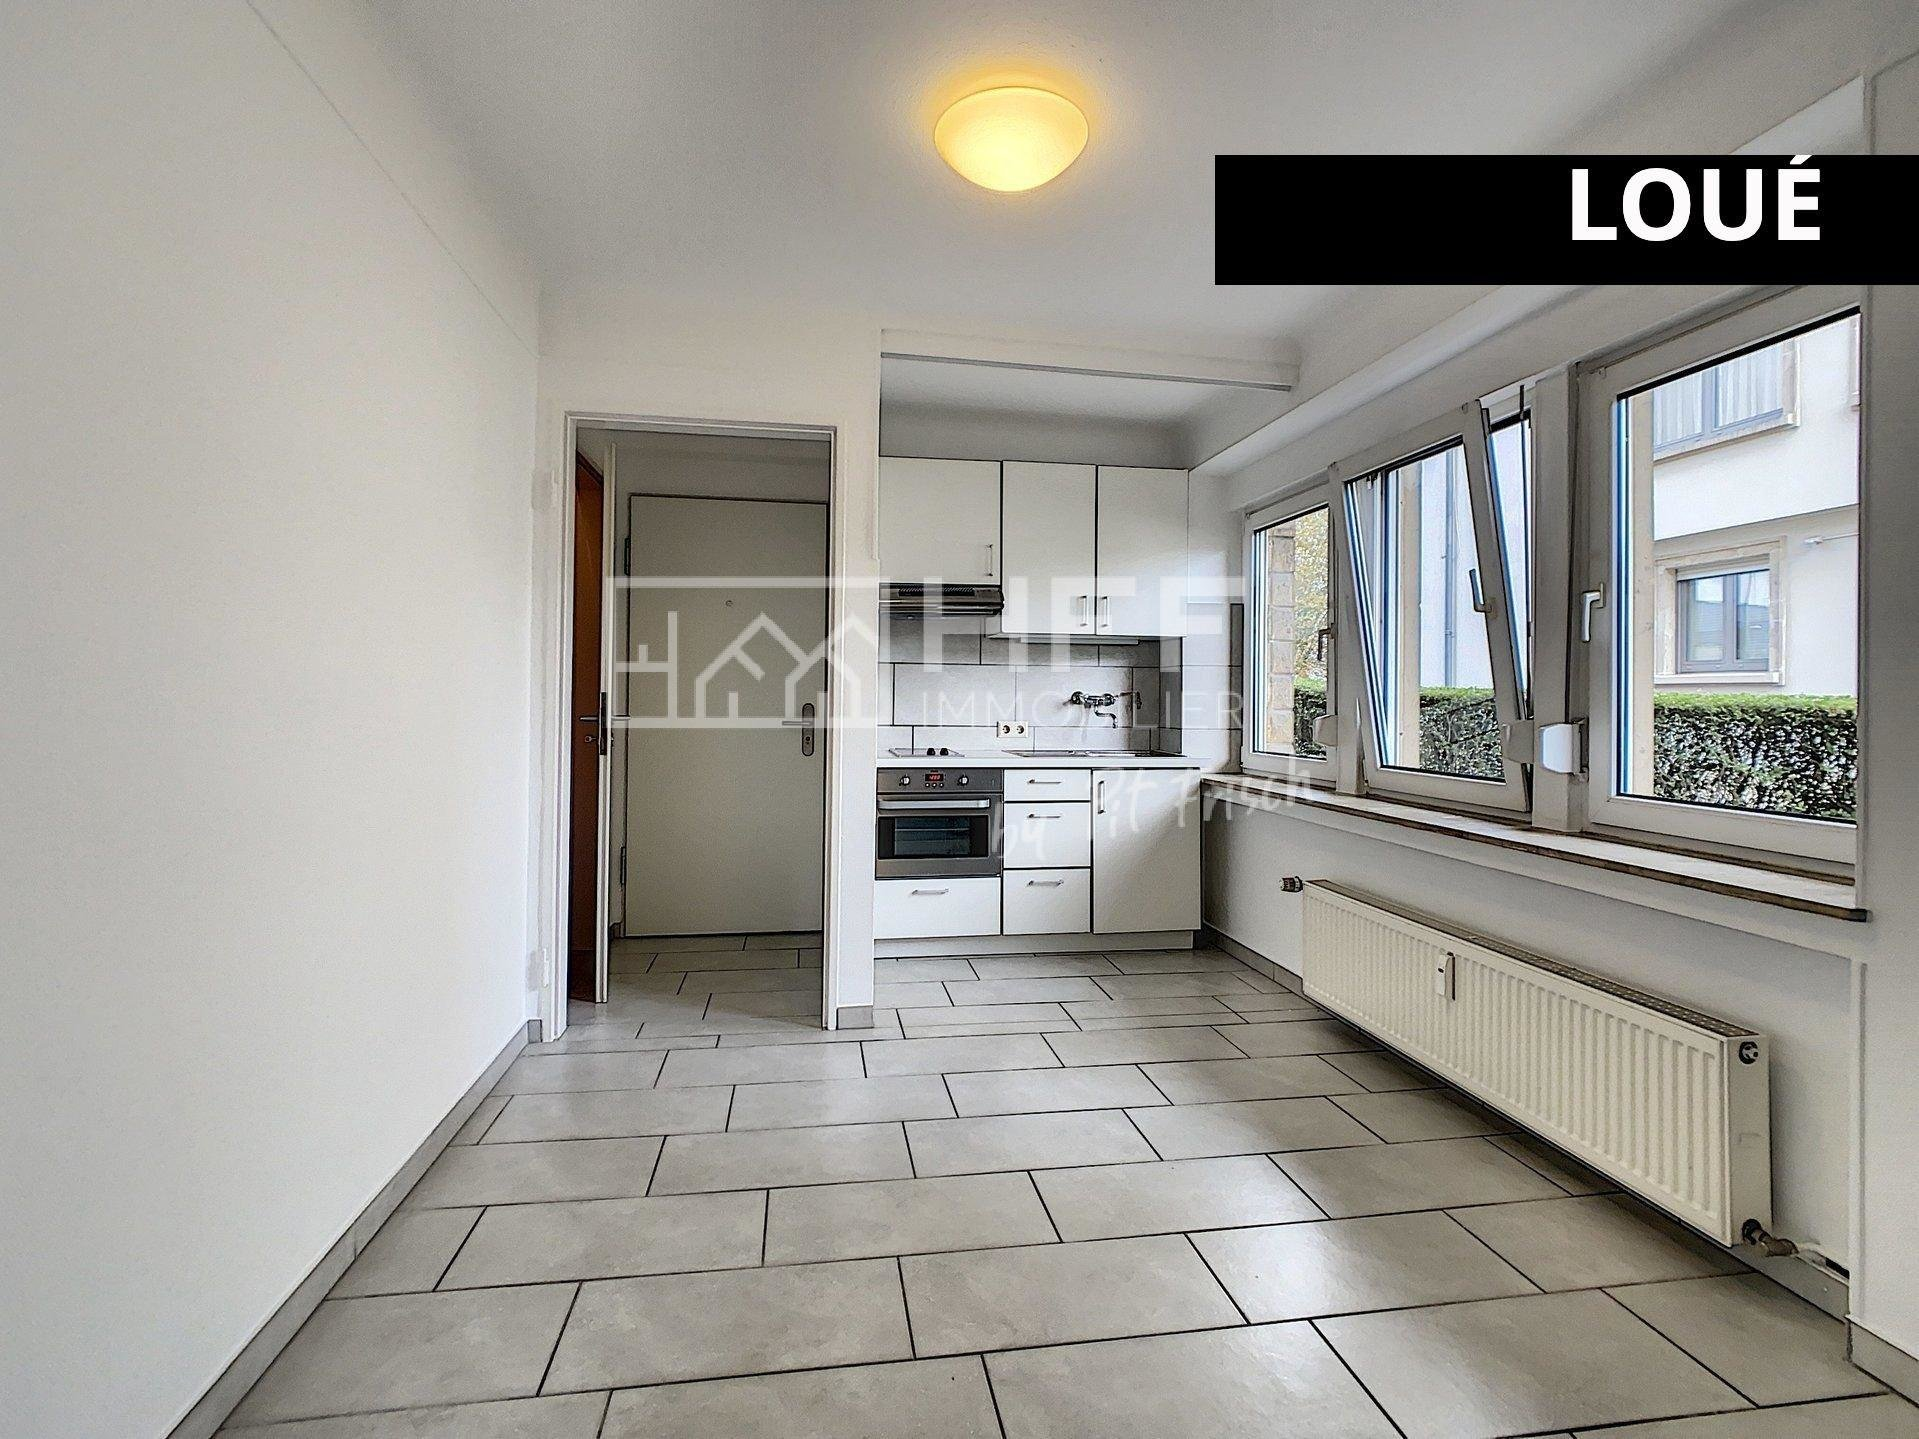 1-bedroom apartment for rent in Luxembourg-Hollerich